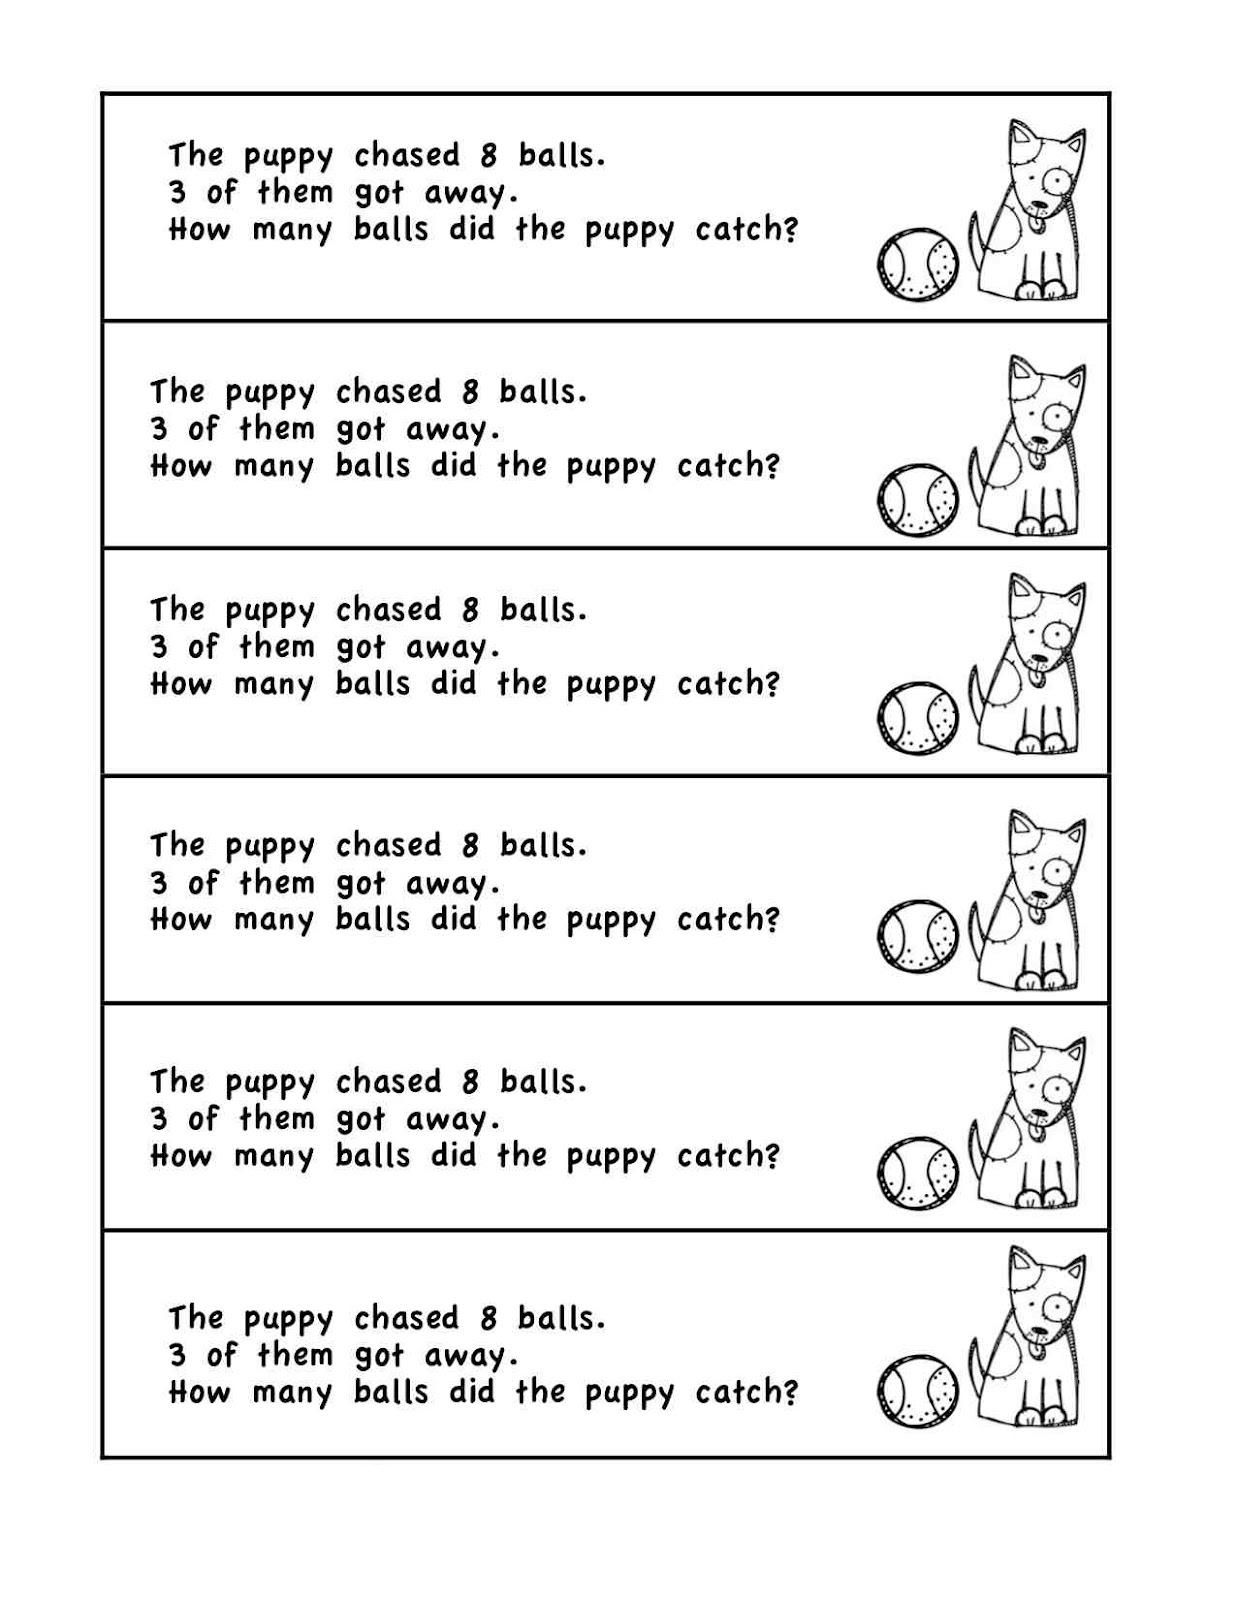 worksheet Story Problems math word problems kindergarten printing printable pinterest printing